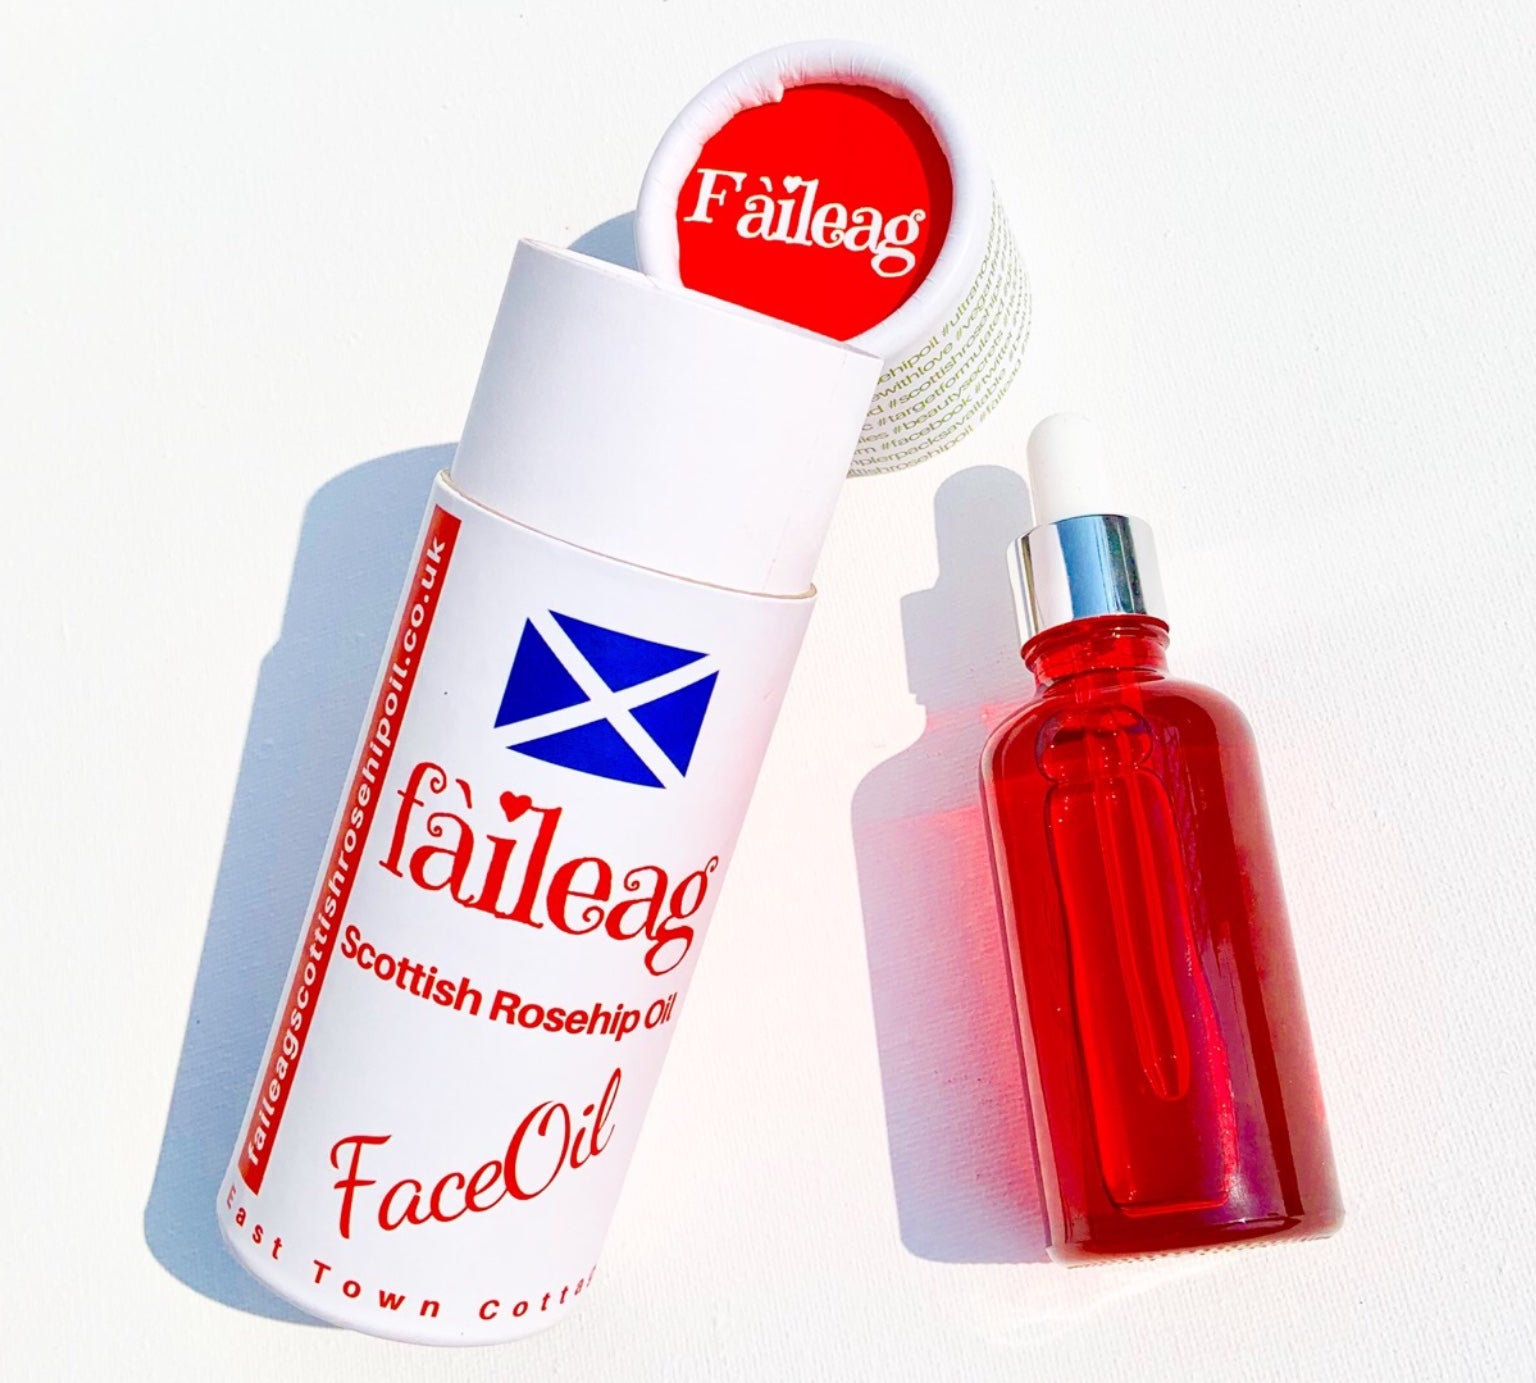 Welcome to Fàileag Scottish RoseHip Oil